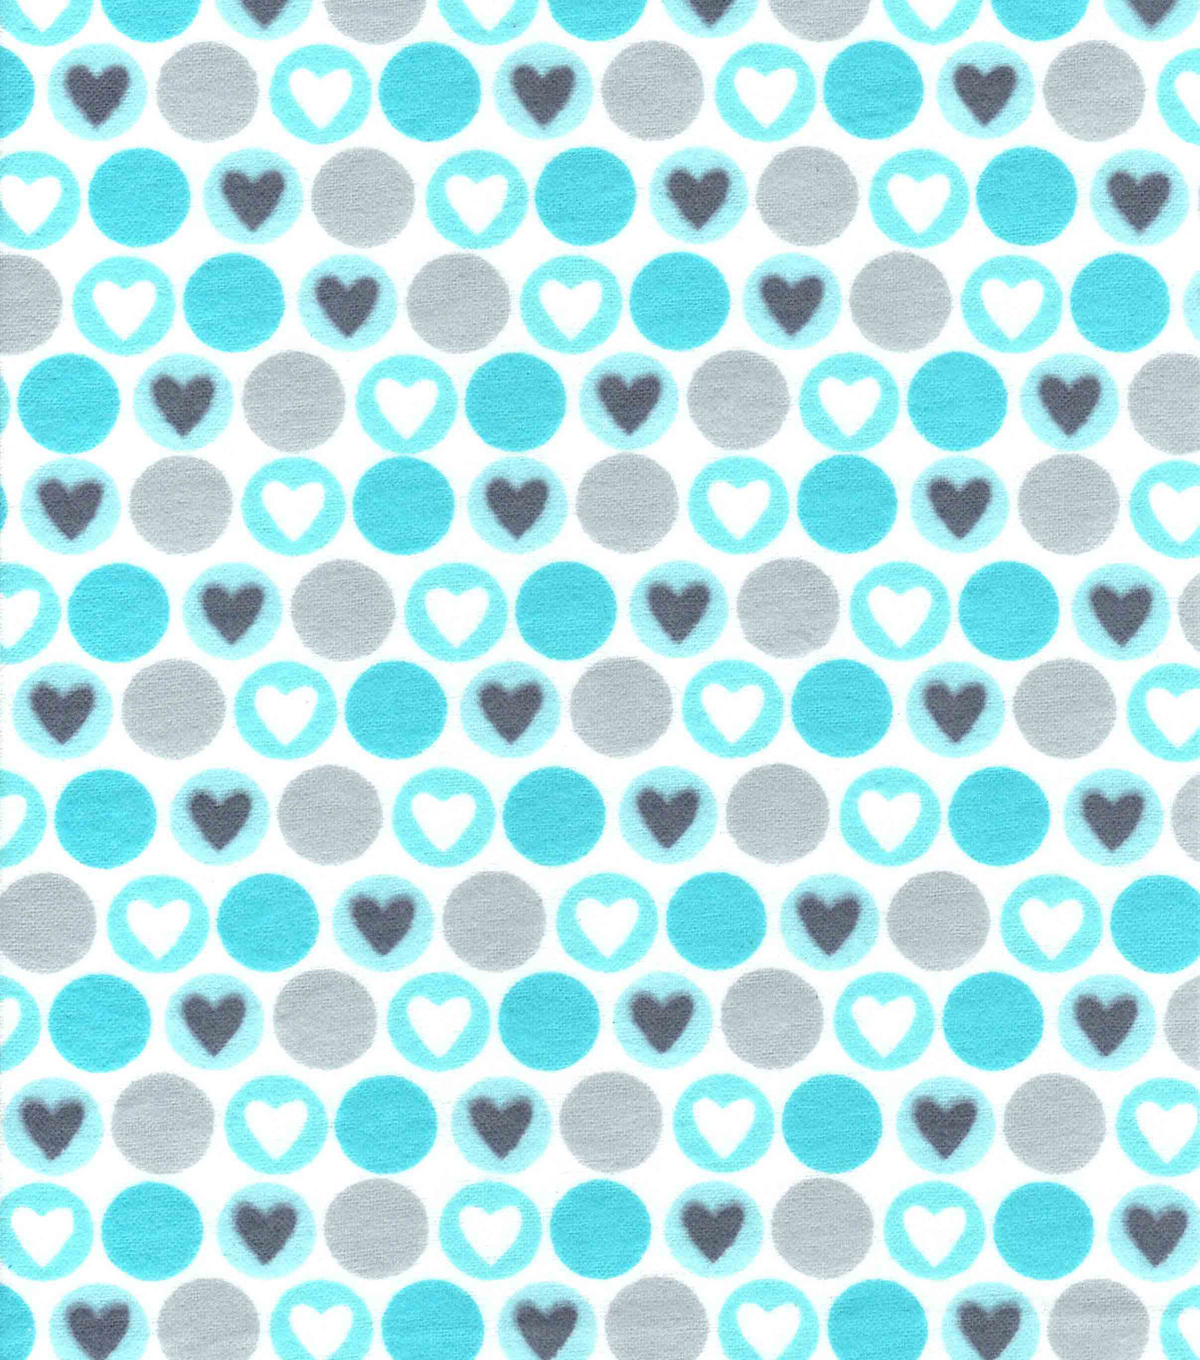 Snuggle Flannel Fabric -Blue Hearts & Dots